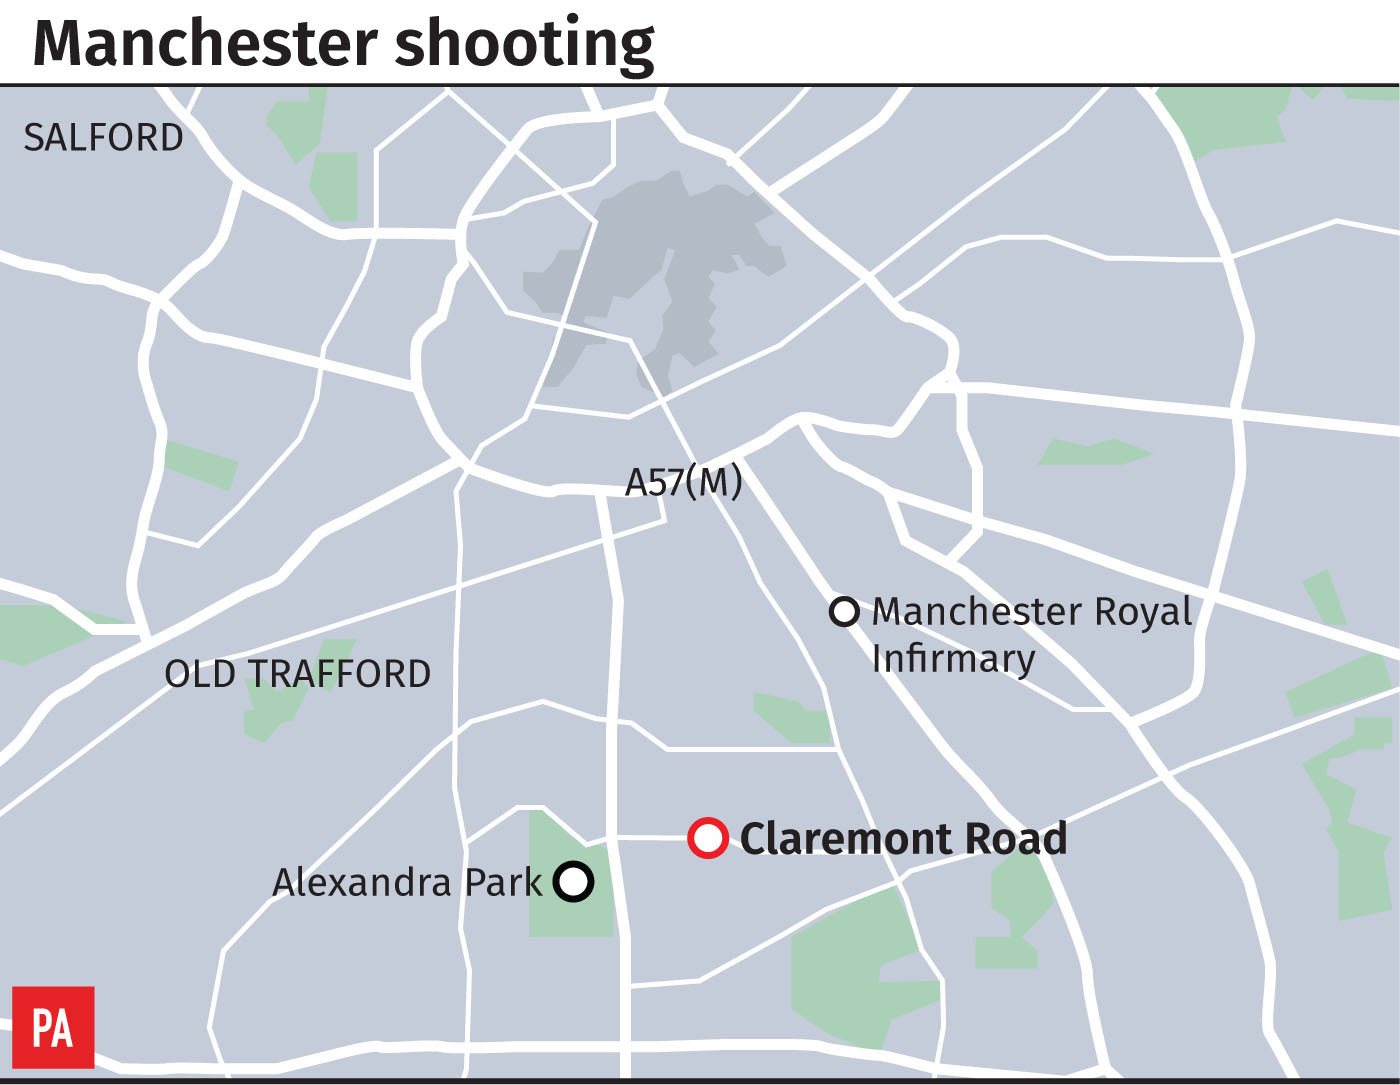 Manchester police say 10 people hospitalized after shooting